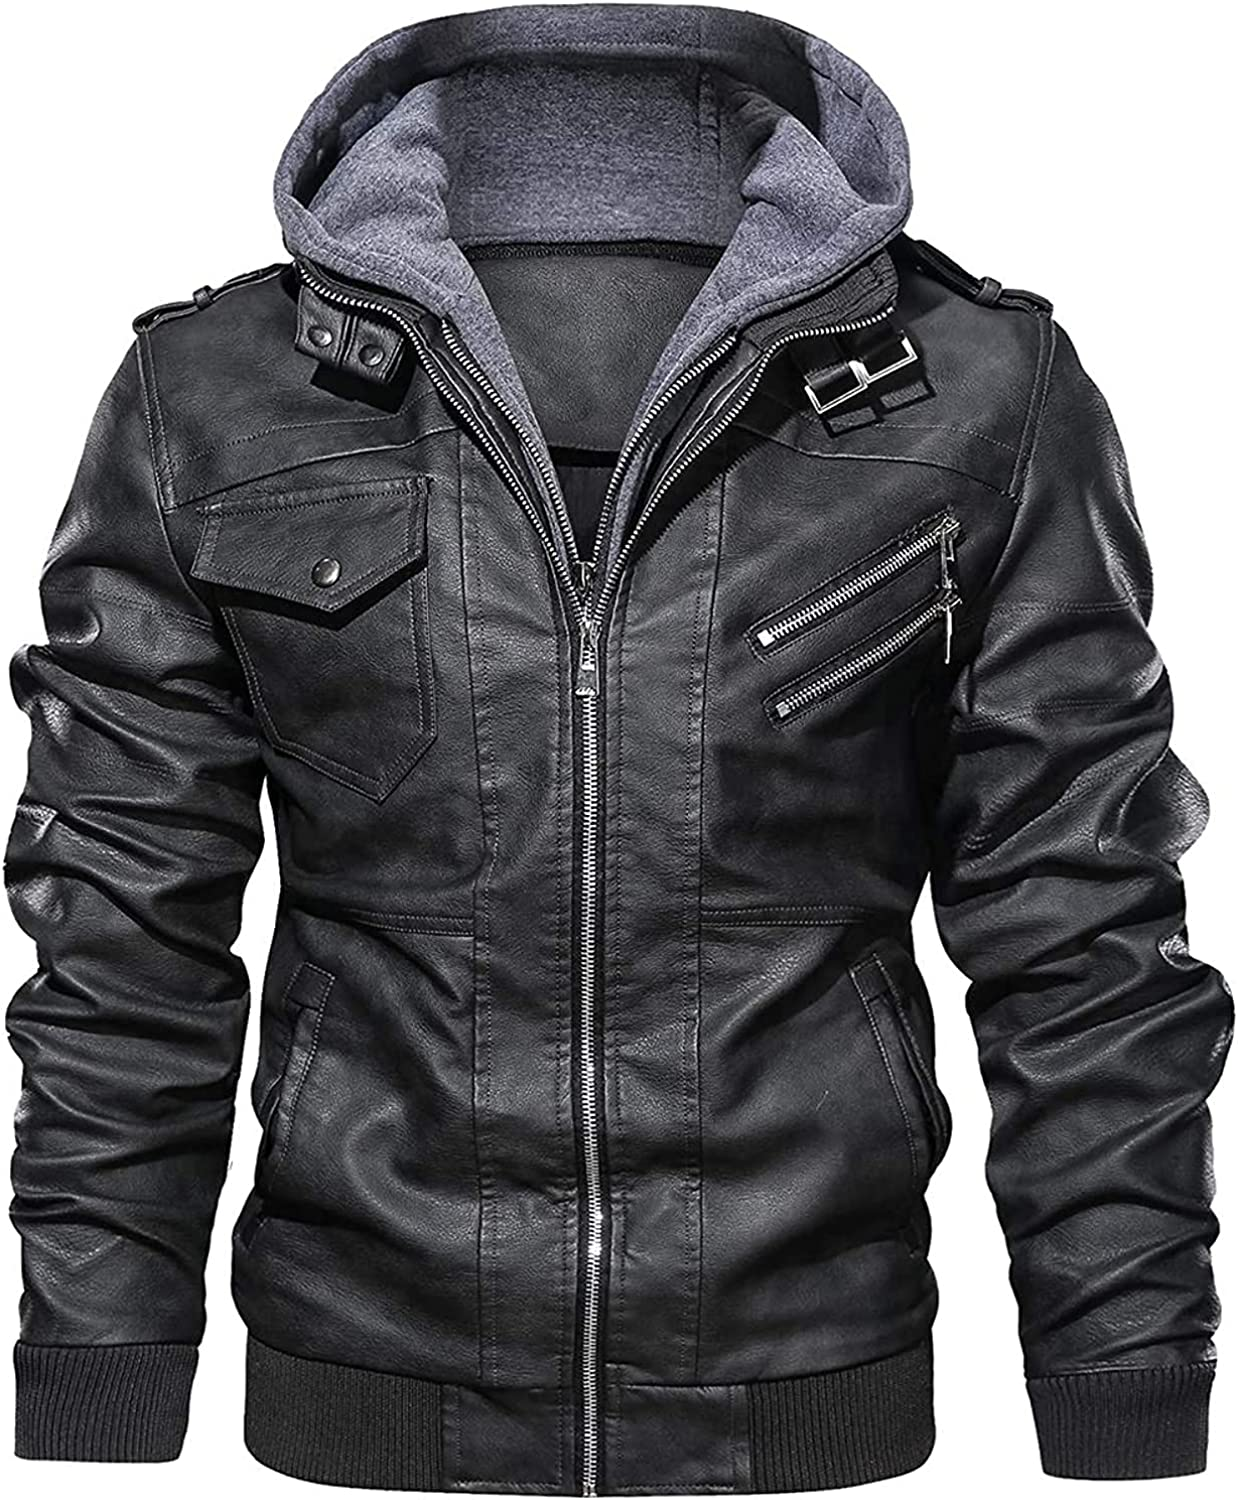 Men's Casual Stand Collar Cow Hide Real Leather Zip-Up Motorcycle Bomber Jacket Removable Hood by MH Threads